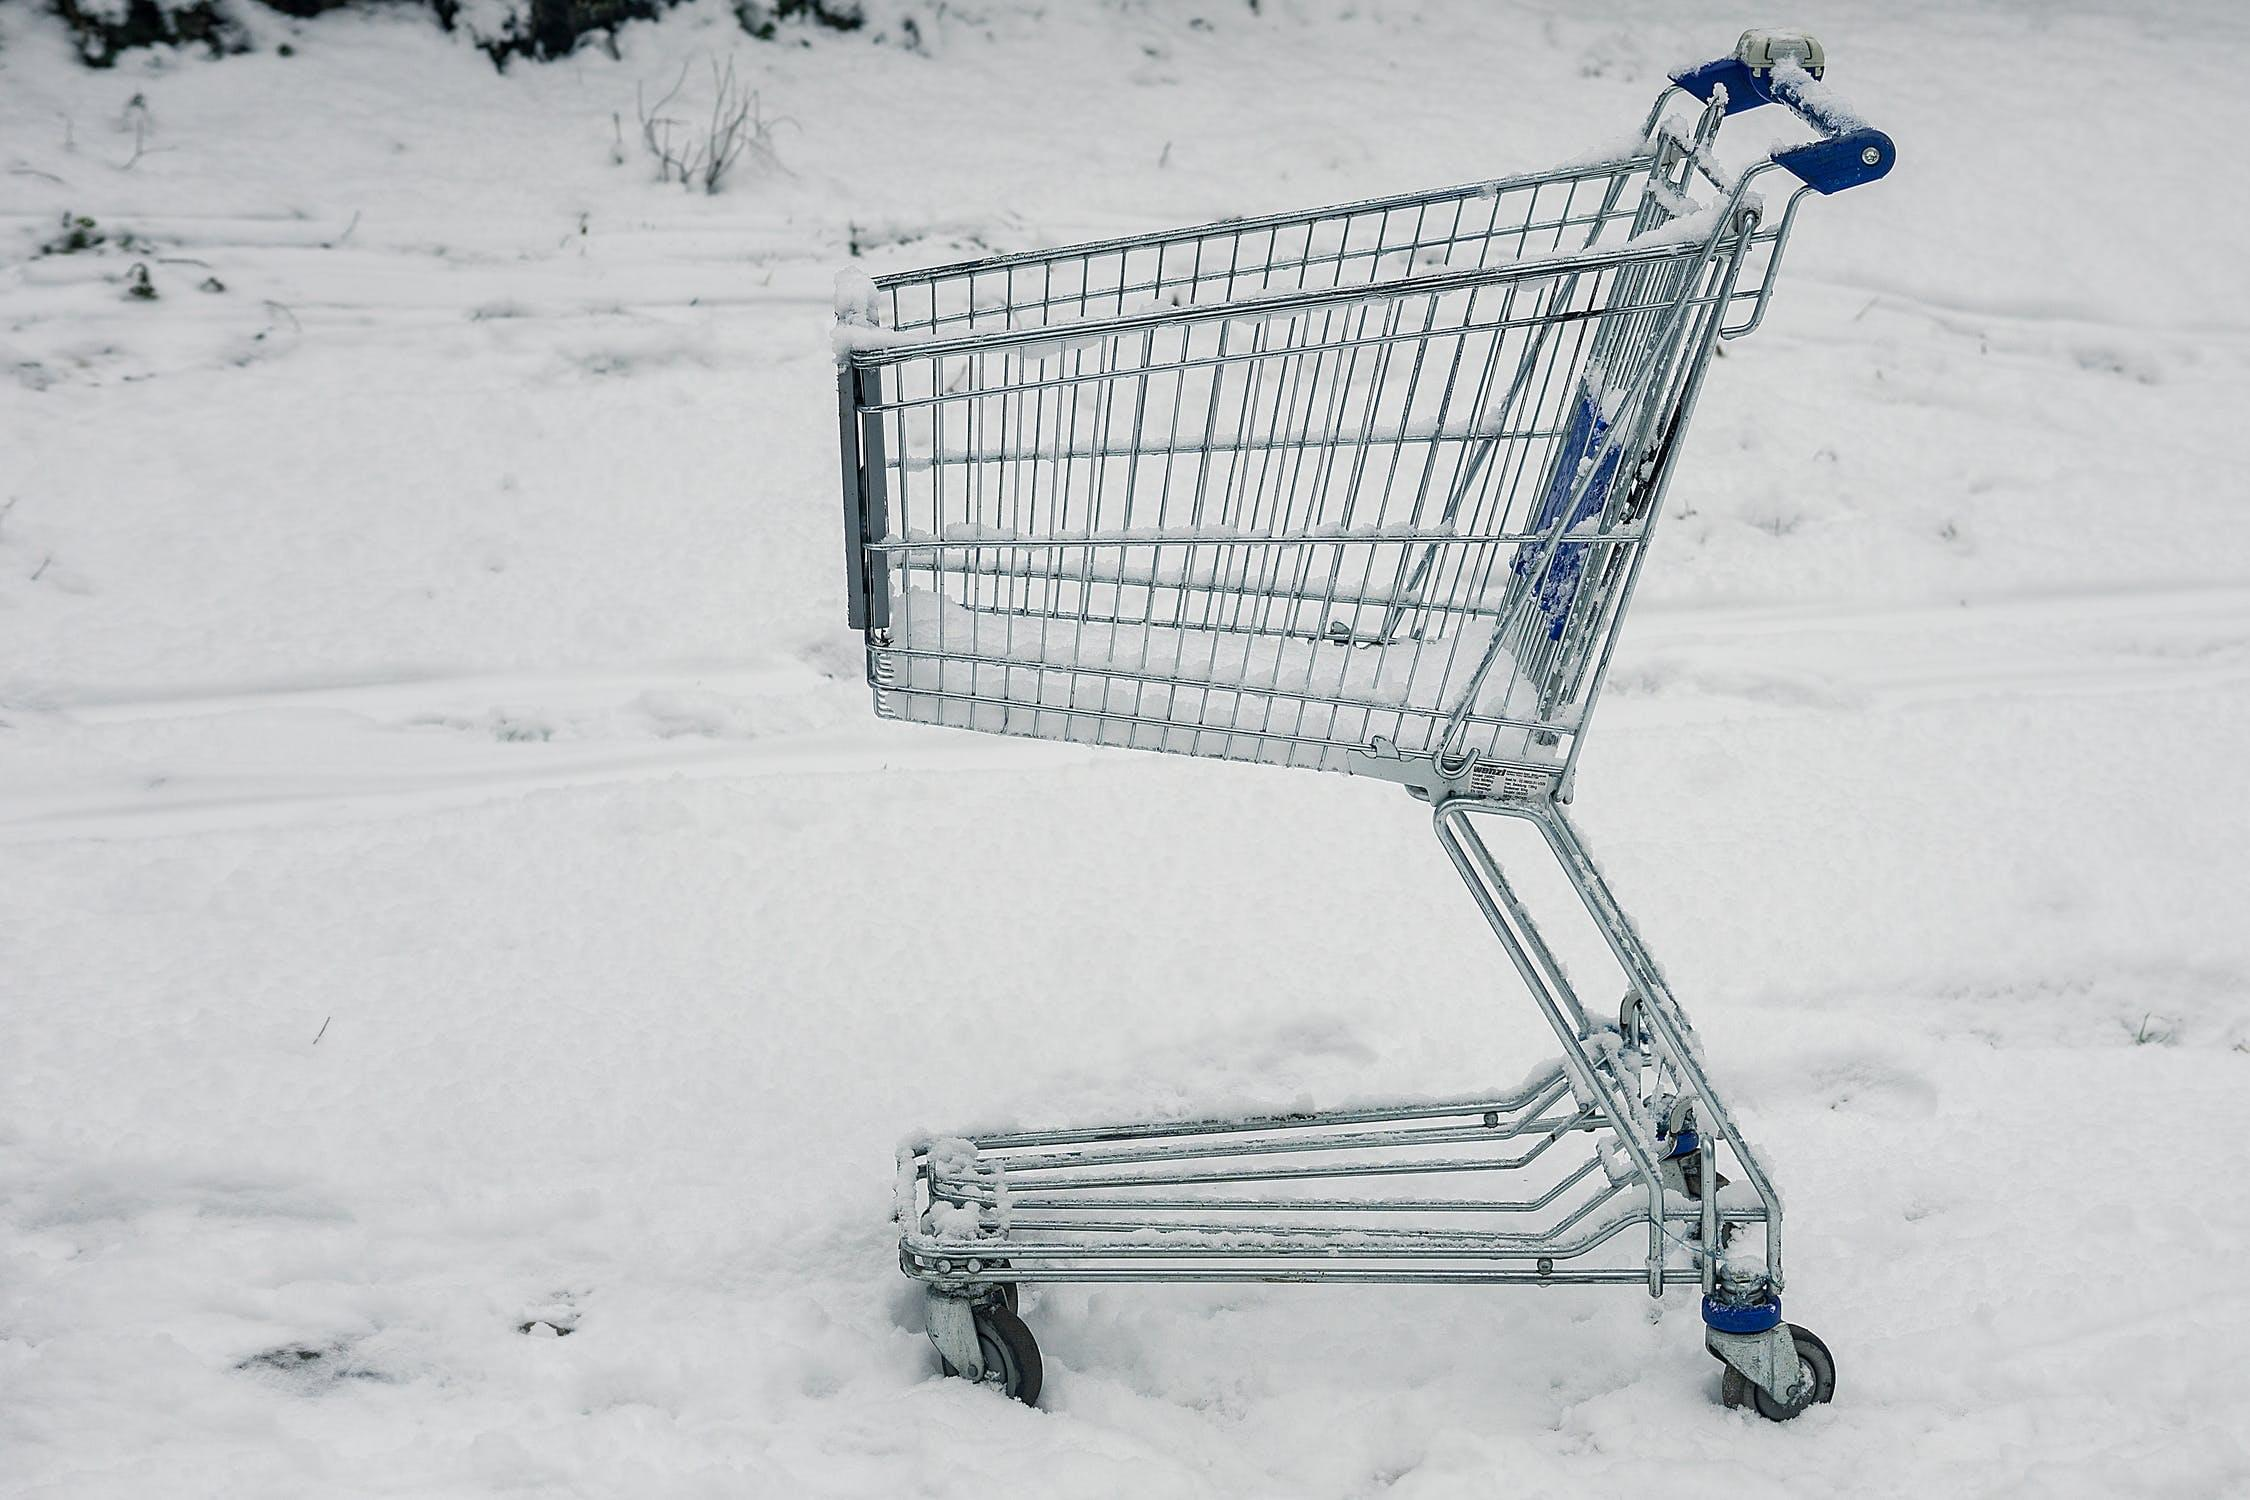 """Shopping Cart Theory"" is testing whether people are good or bad"